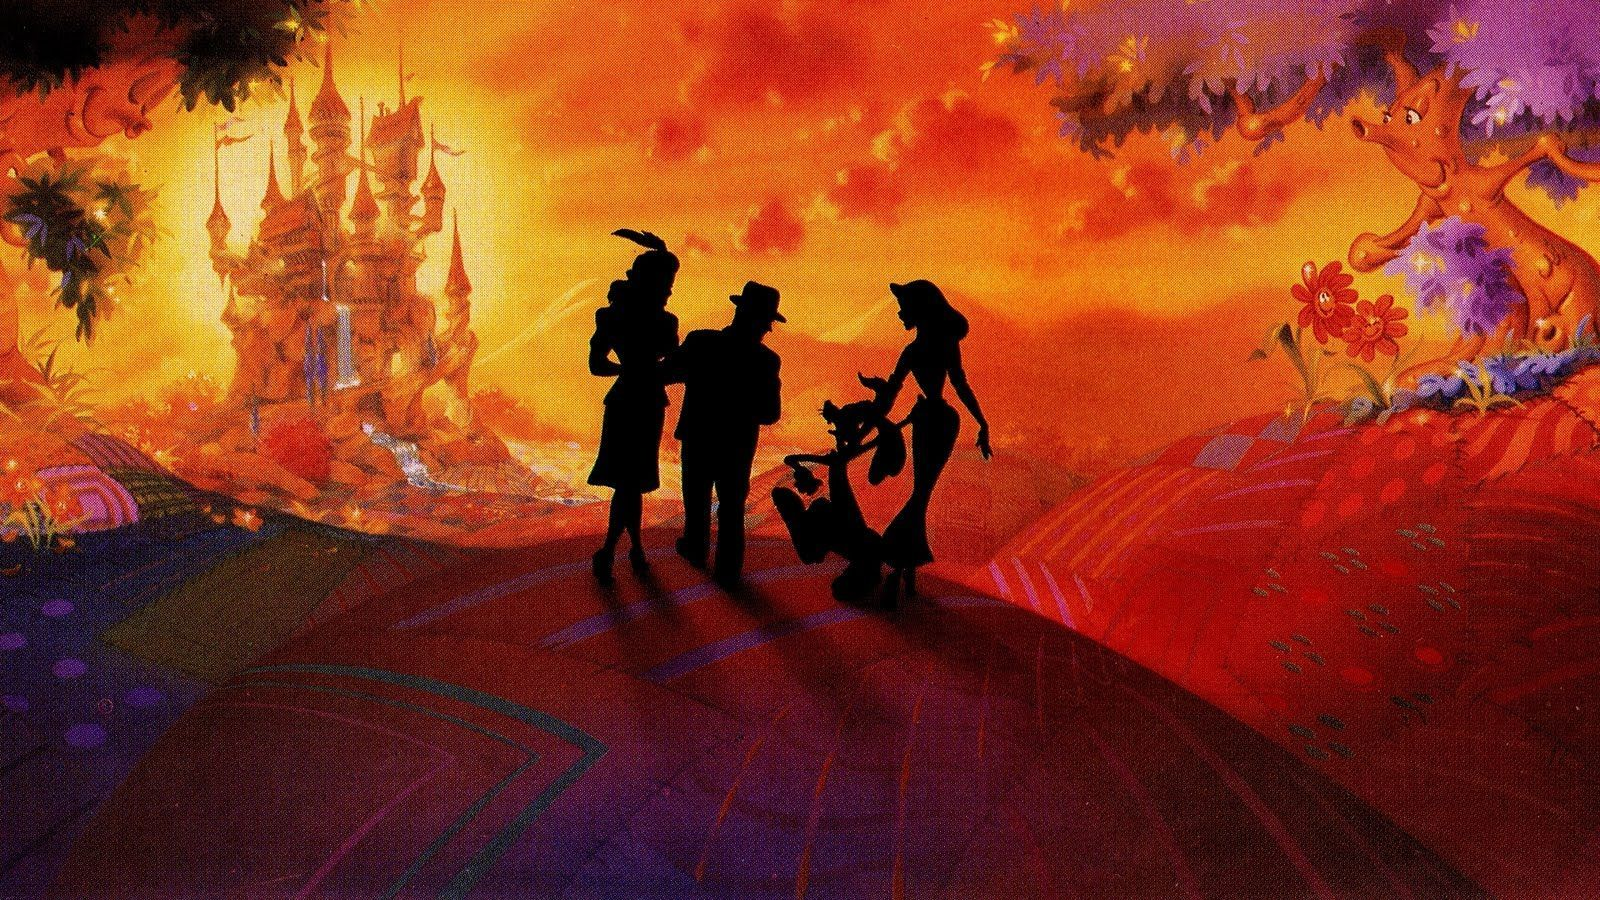 Roger Rabbit Wallpapers - Wallpaper Cave | Android | Pinterest ...